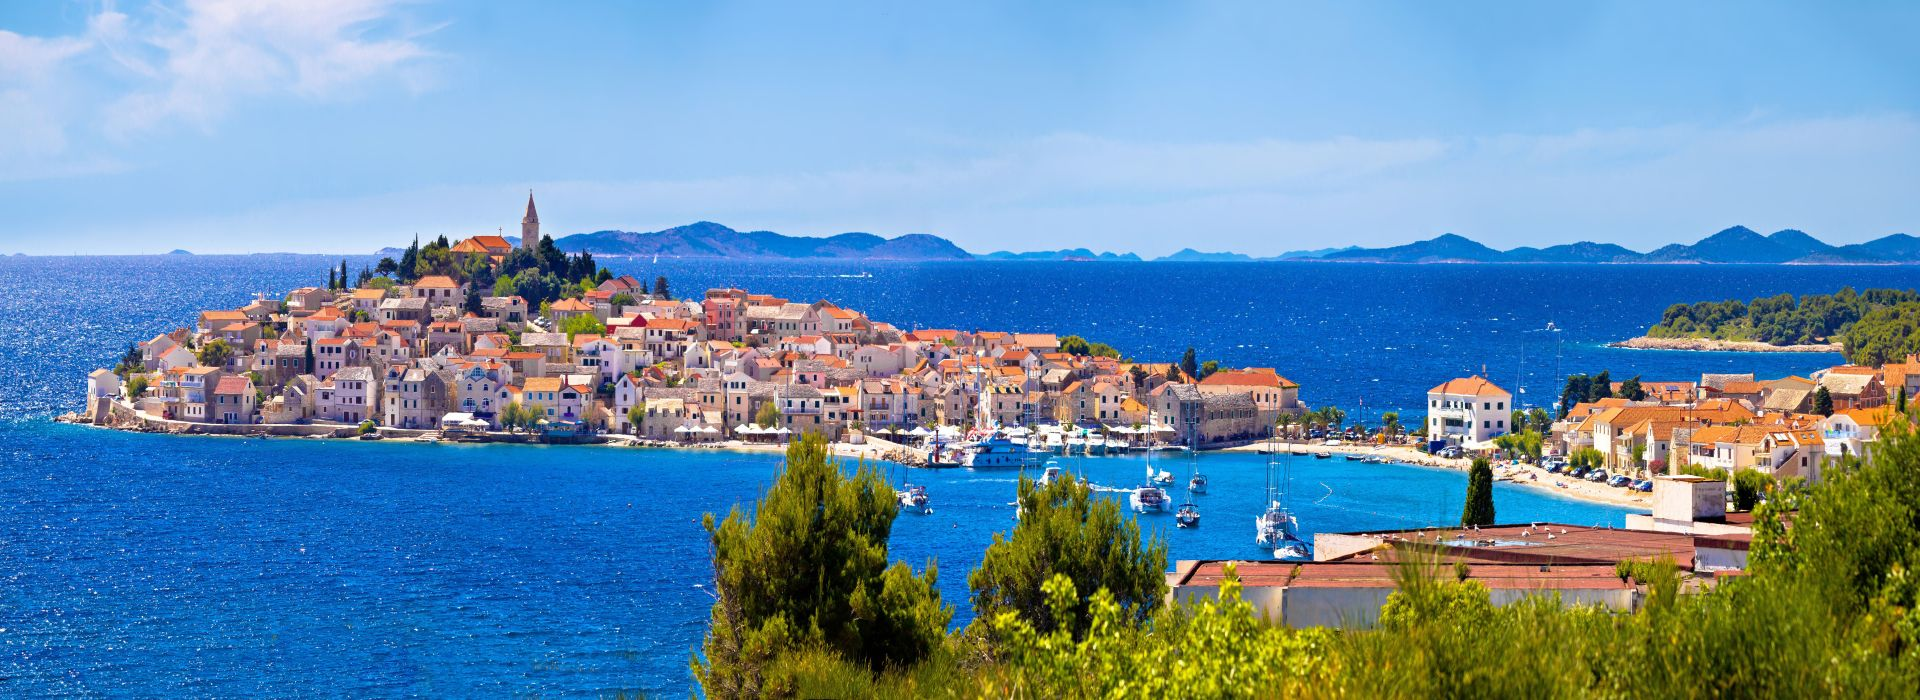 Town Of Primošten Panoramic View